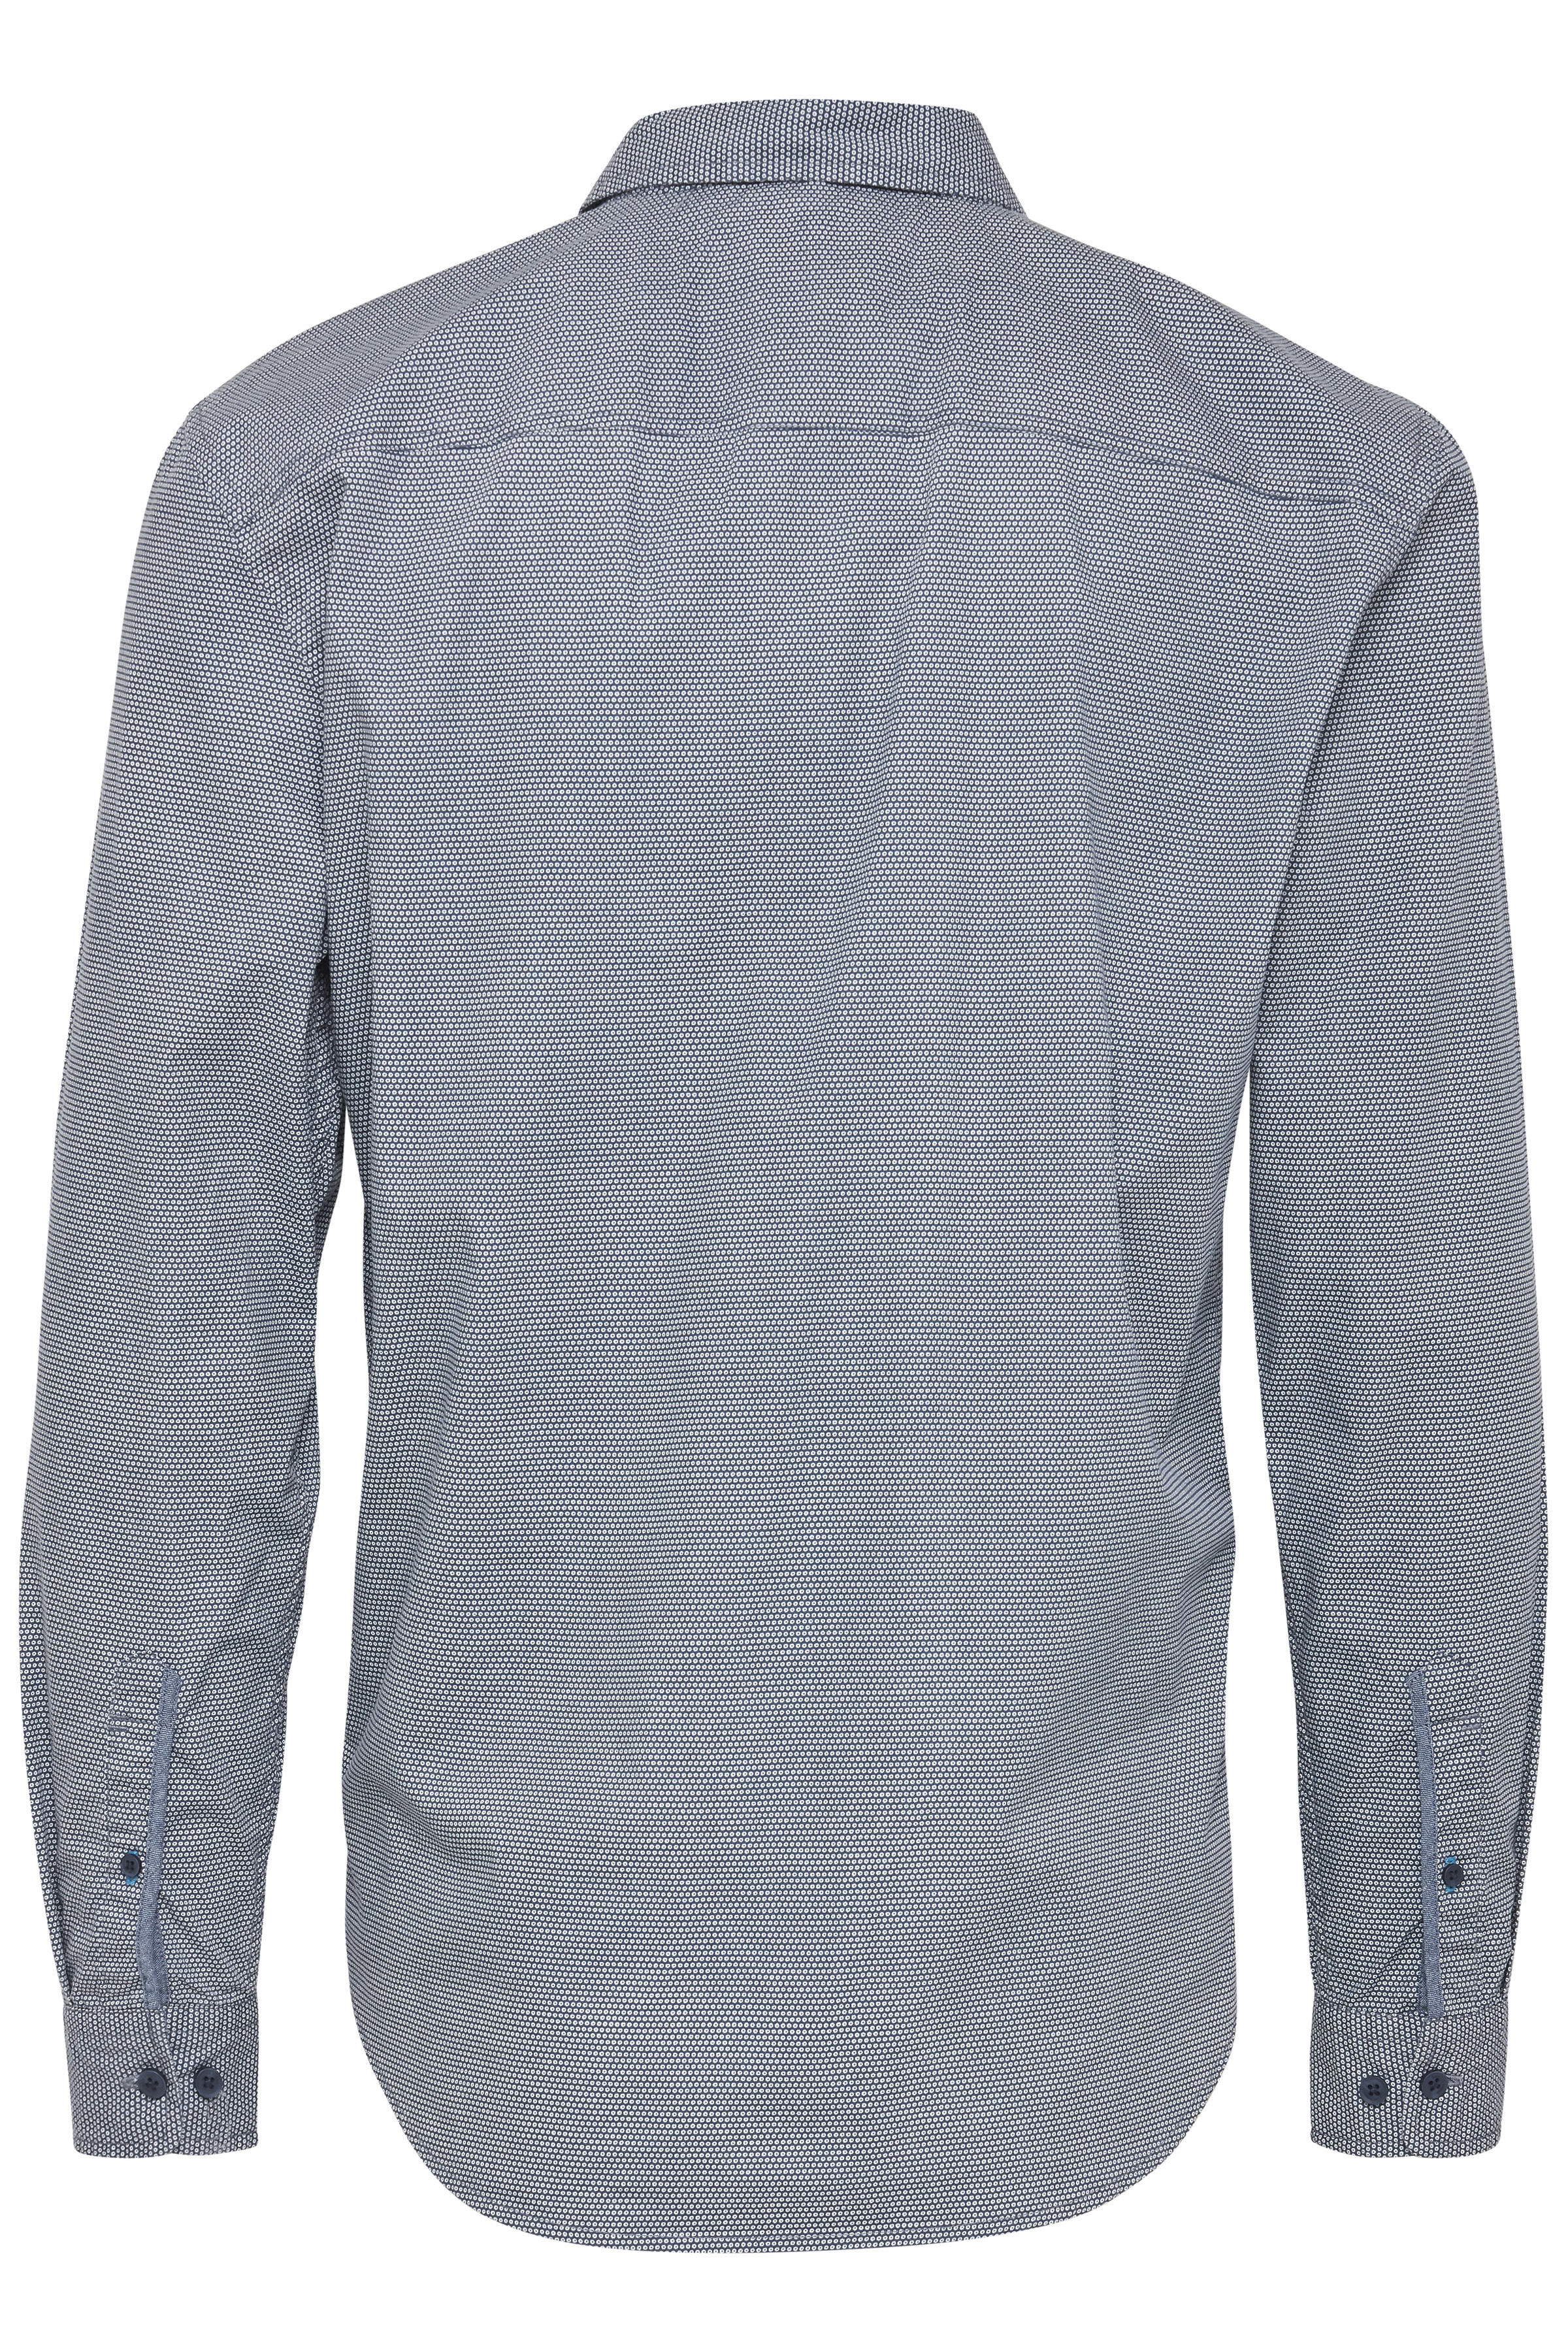 Denim Blue Long sleeved shirt fra Blend He – Køb Denim Blue Long sleeved shirt fra str. M-XXL her